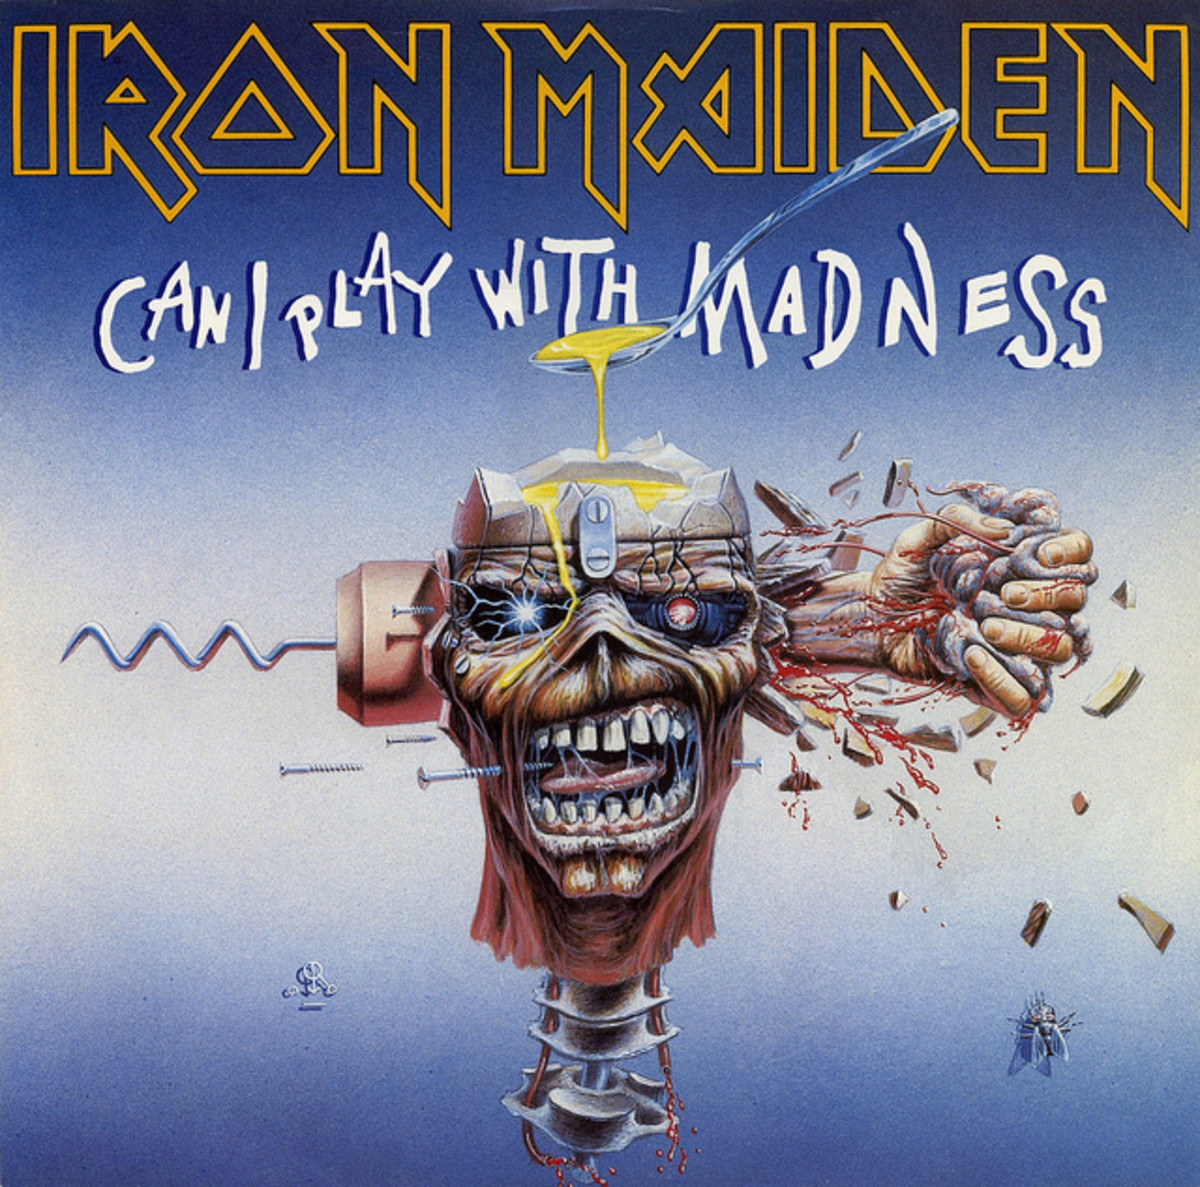 "Iron Maiden ""Can I Play With Madness""  EMI 12EM 4912"" Vinyl Single UK Pressing (1988) Cover Art by Derek Riggs"